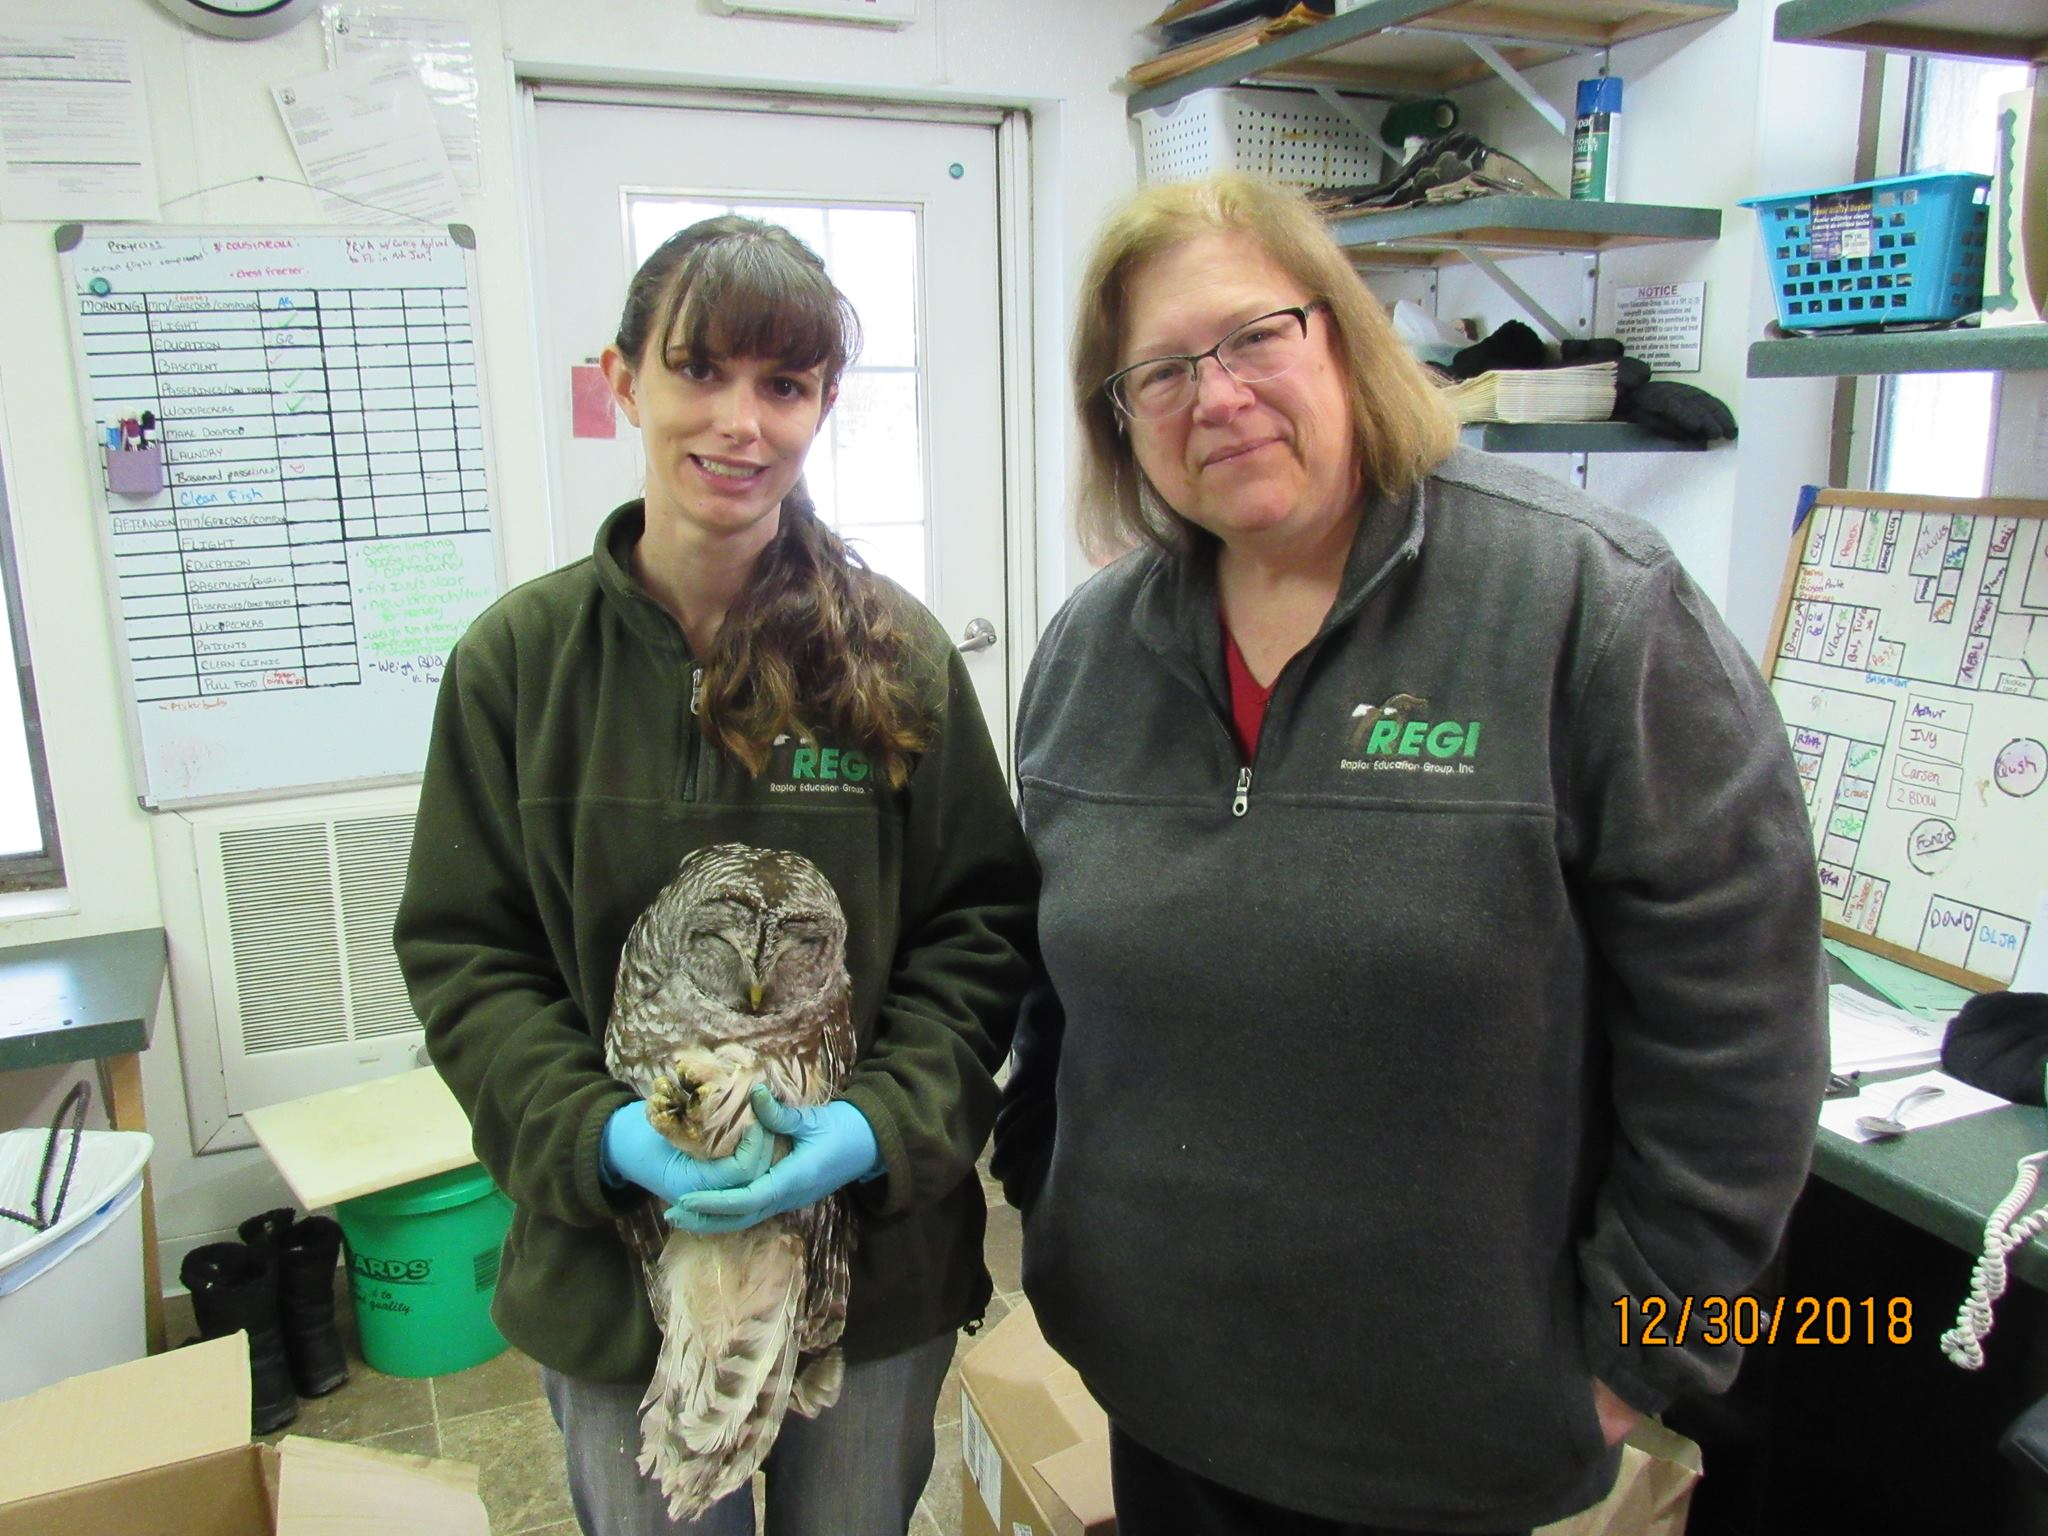 Our thanks to Kathleen Esqueda for dropping everything and transporting this critically ill owl to REGI.